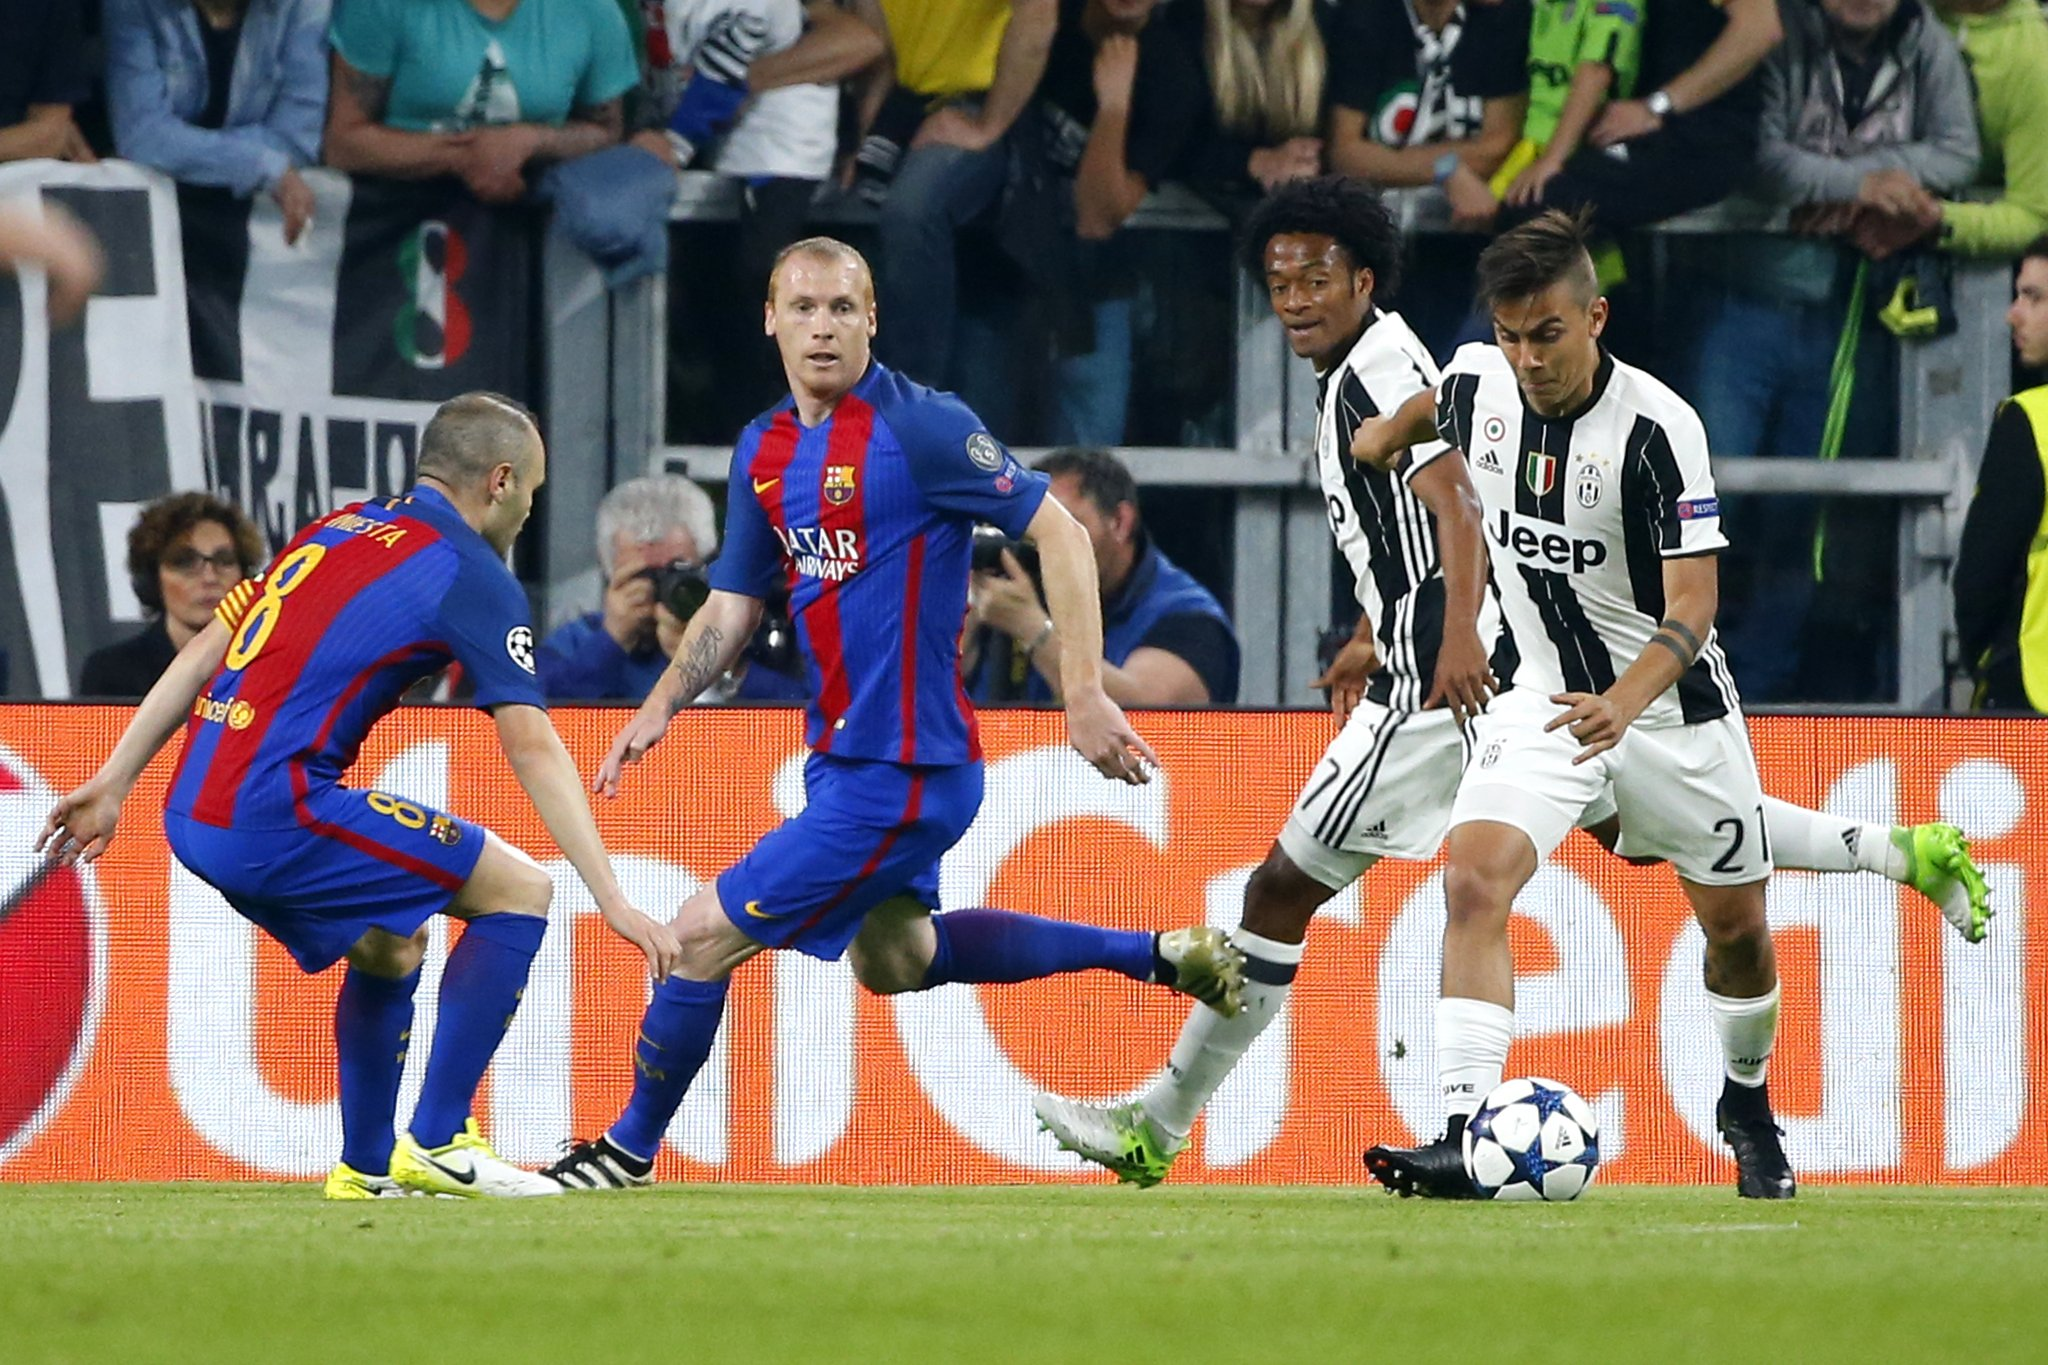 UCL: Dybala Nets Brace As Juventus Outclass Poor Barca